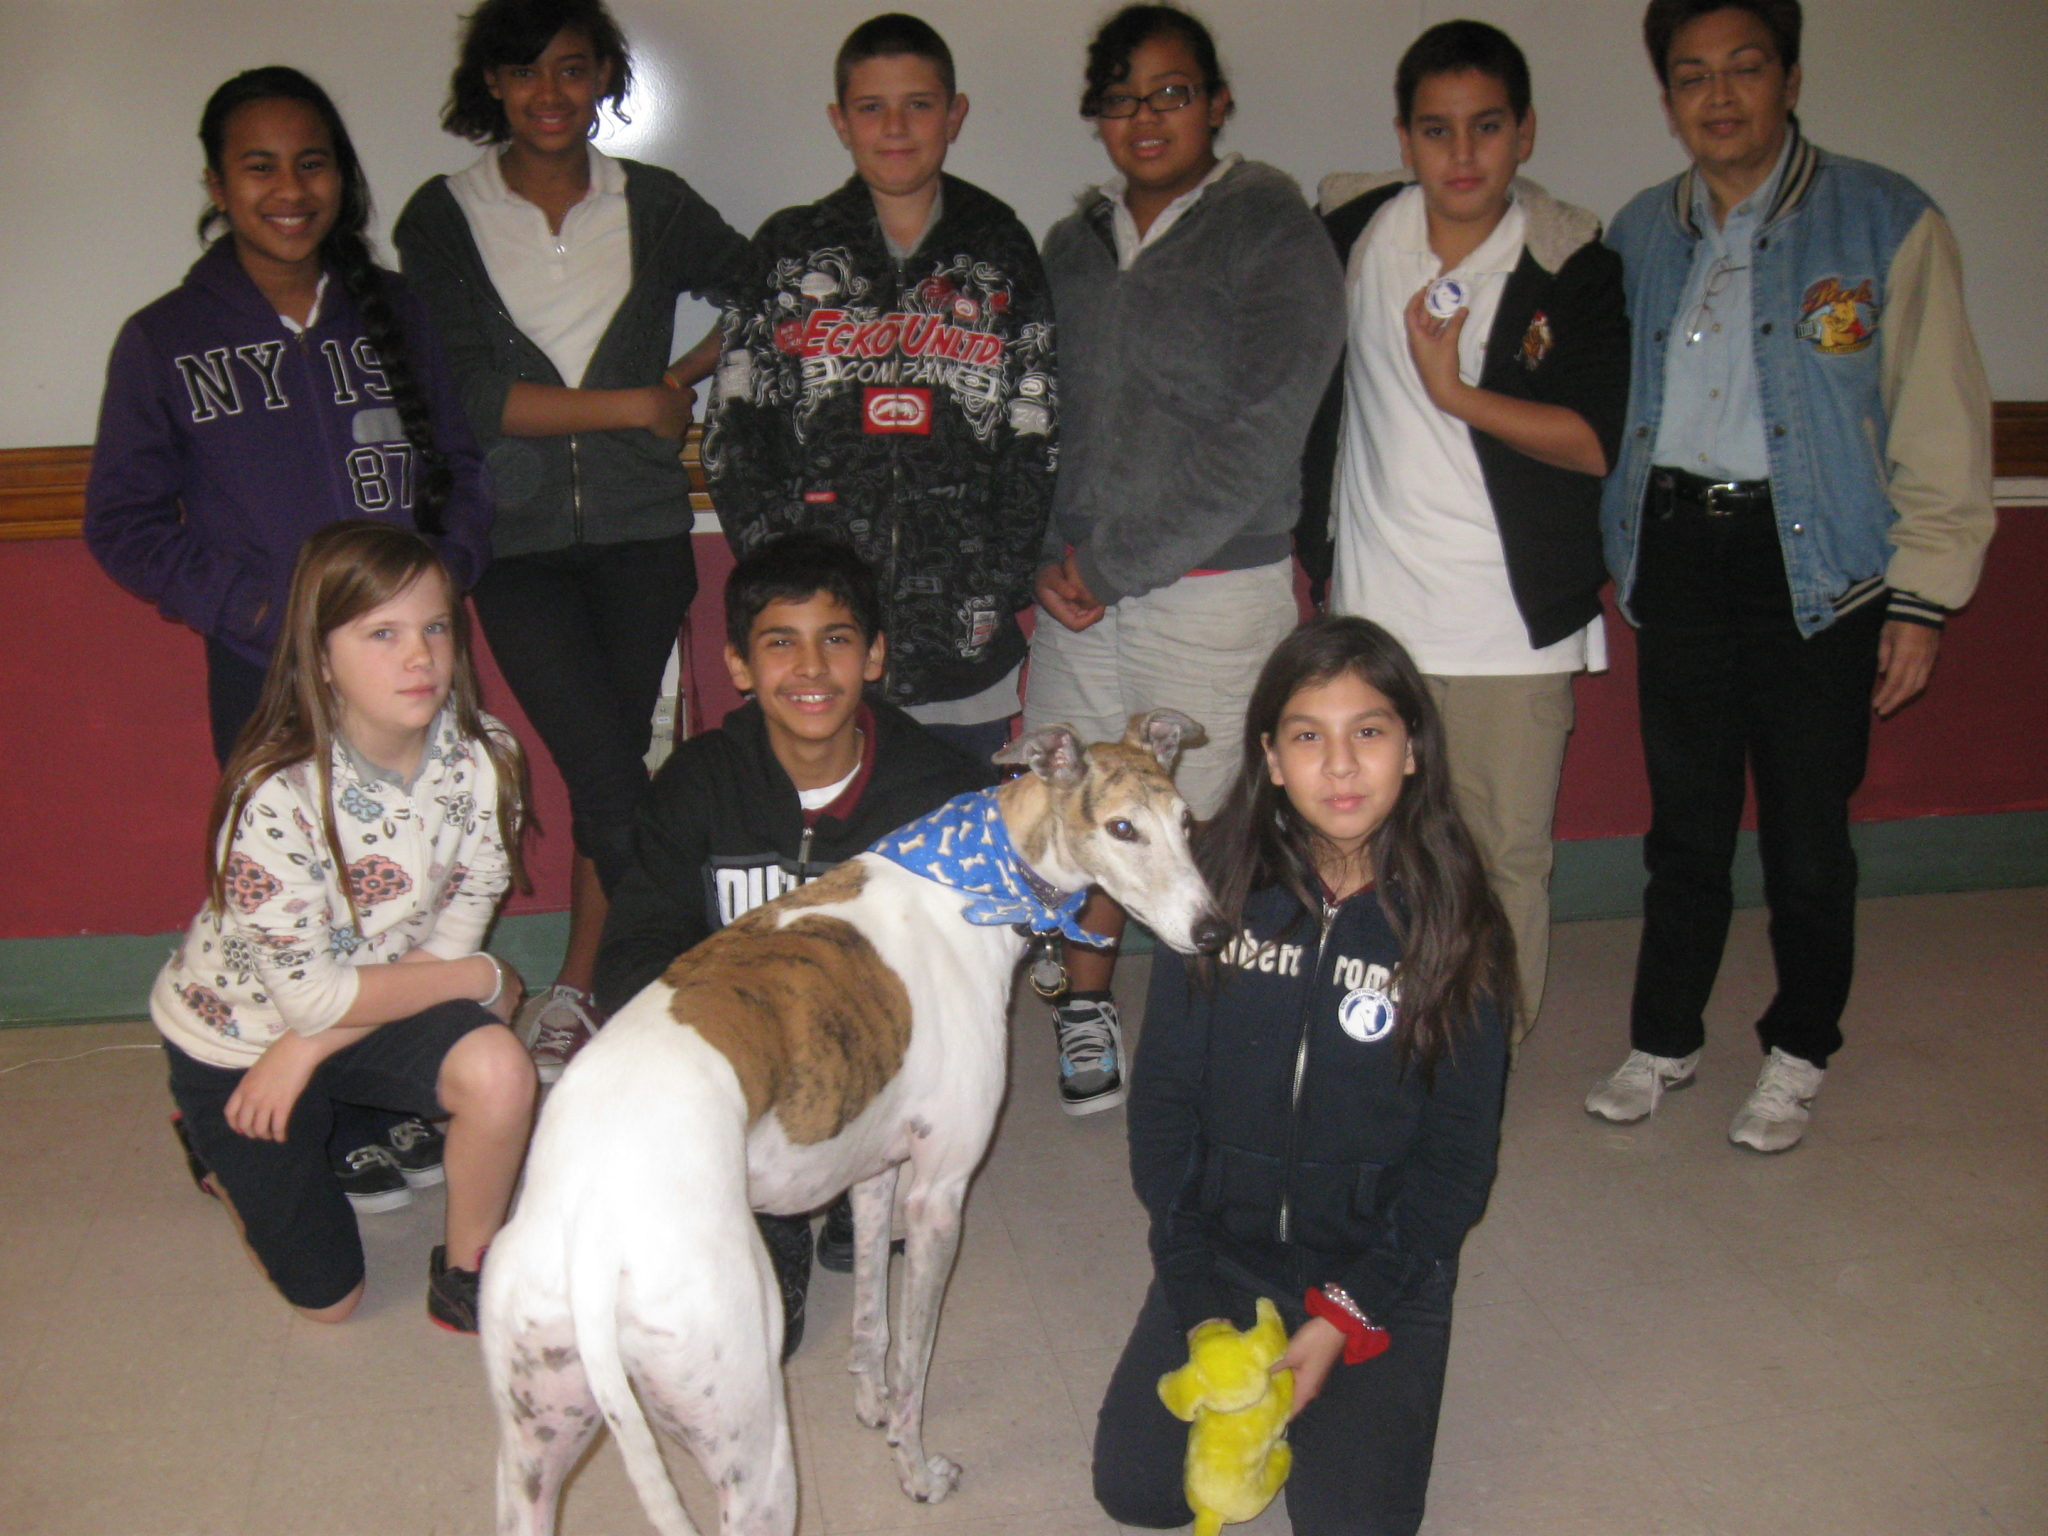 Jett Greyhound visits the school.